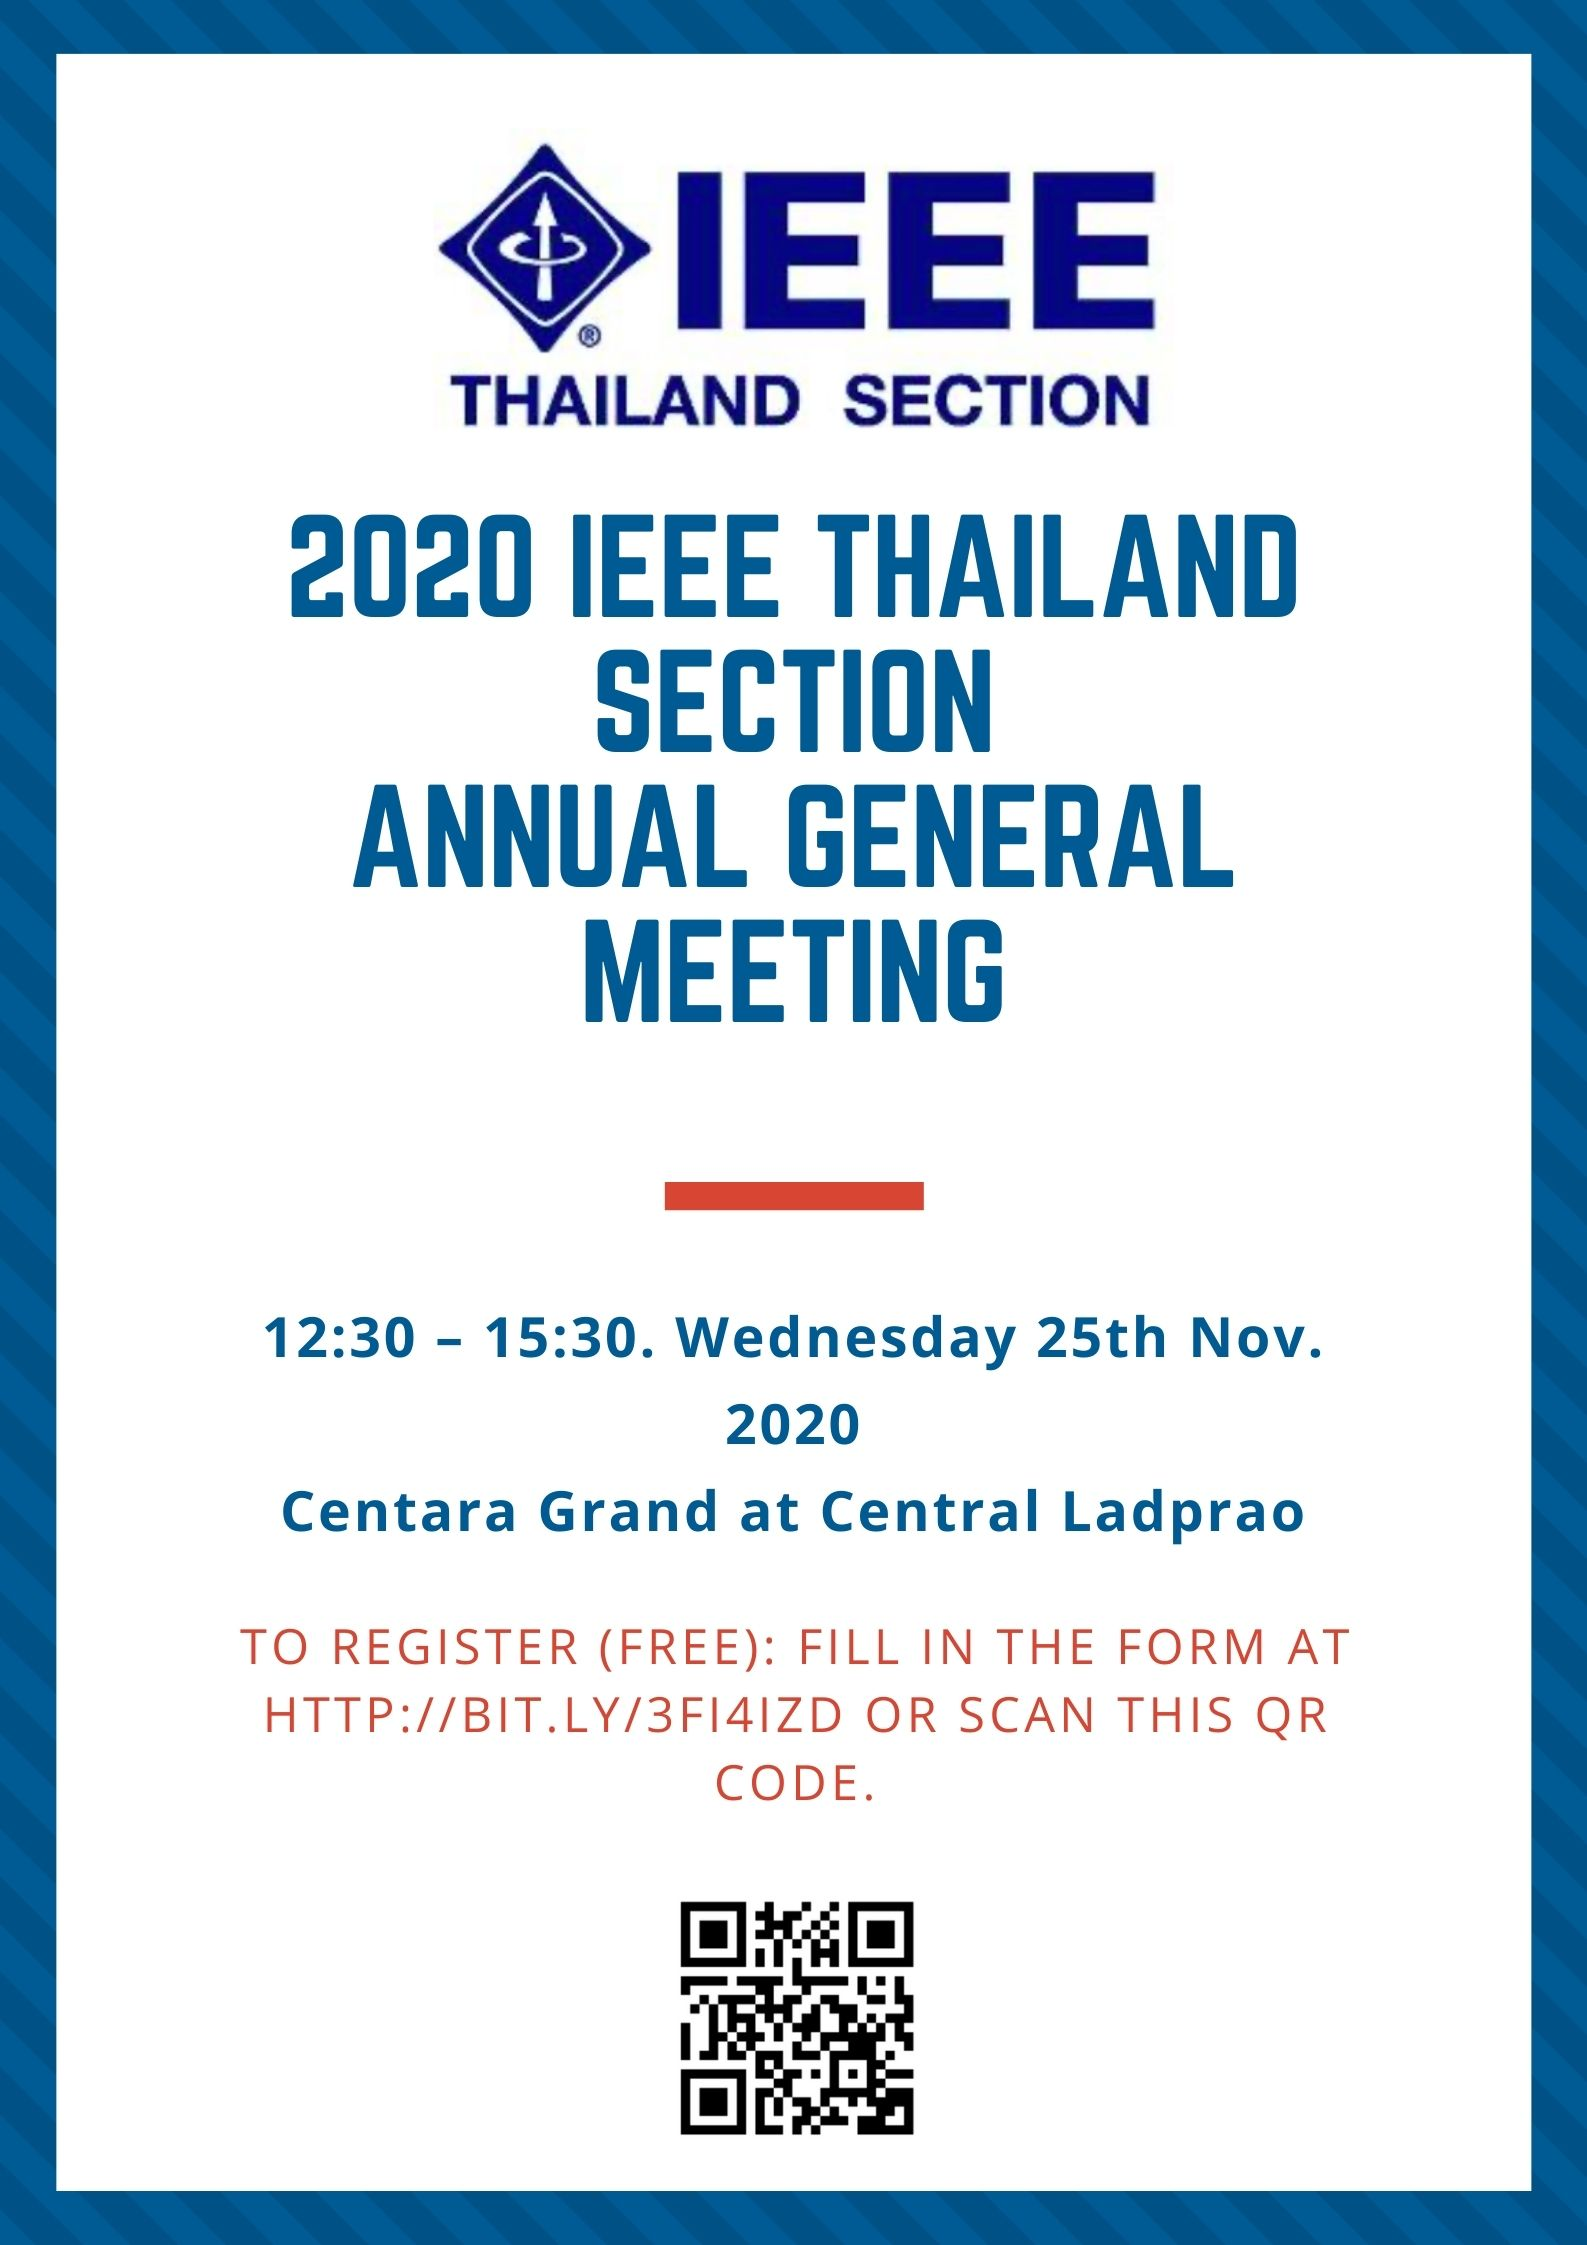 2020 IEEE Thailand Section Annual General Meeting